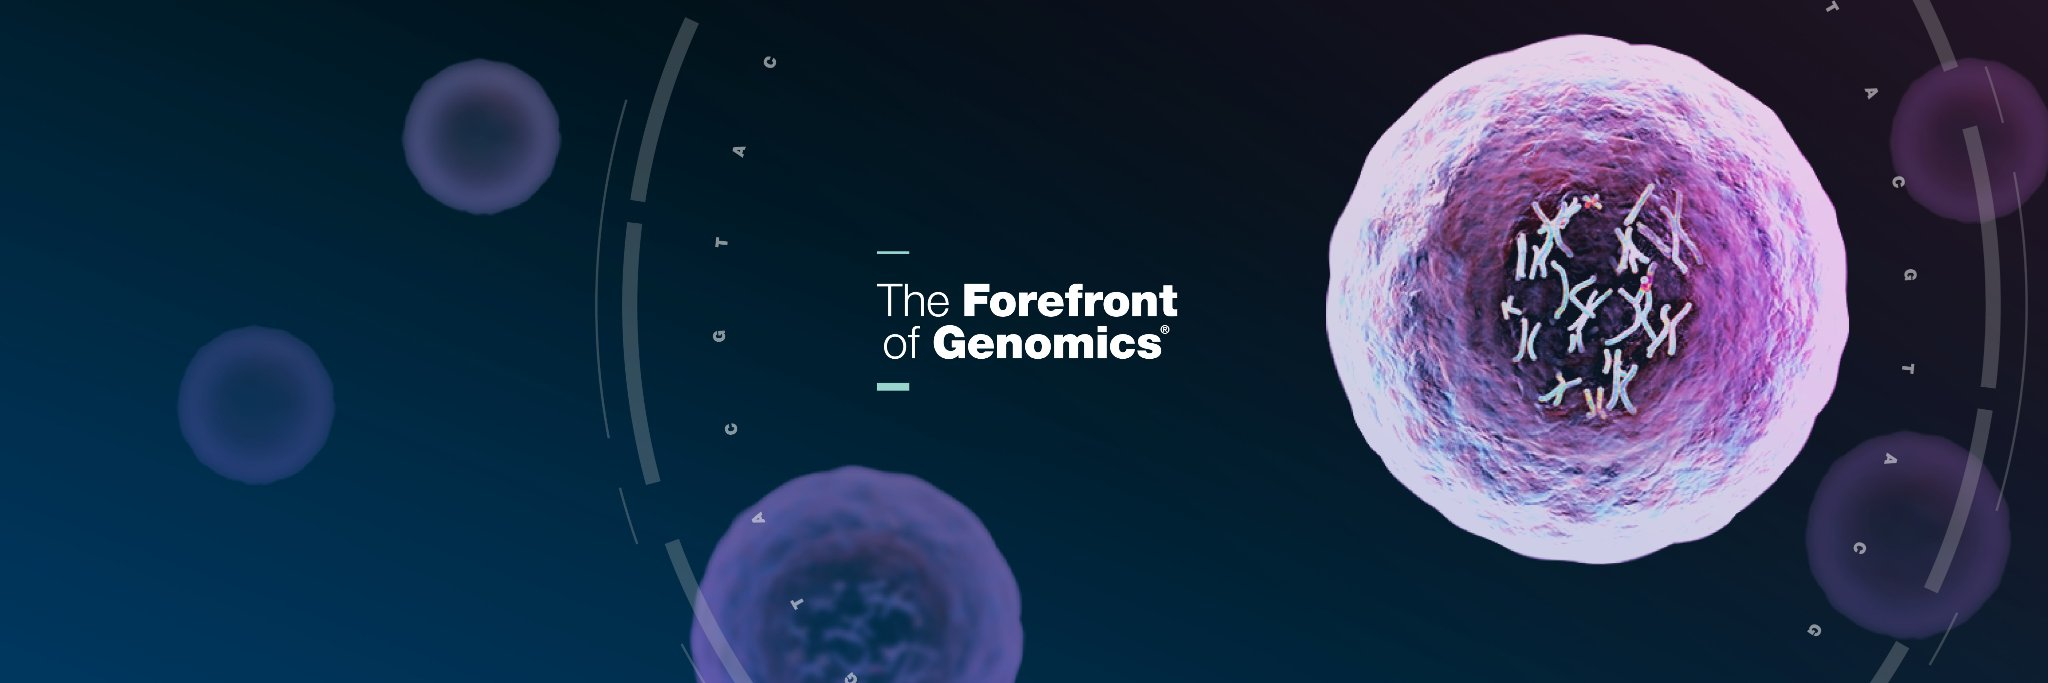 Did you know not all chromosomes are the same size? The X chromosome is about three times larger than the Y chromos… https://t.co/WRfzzJPdS5